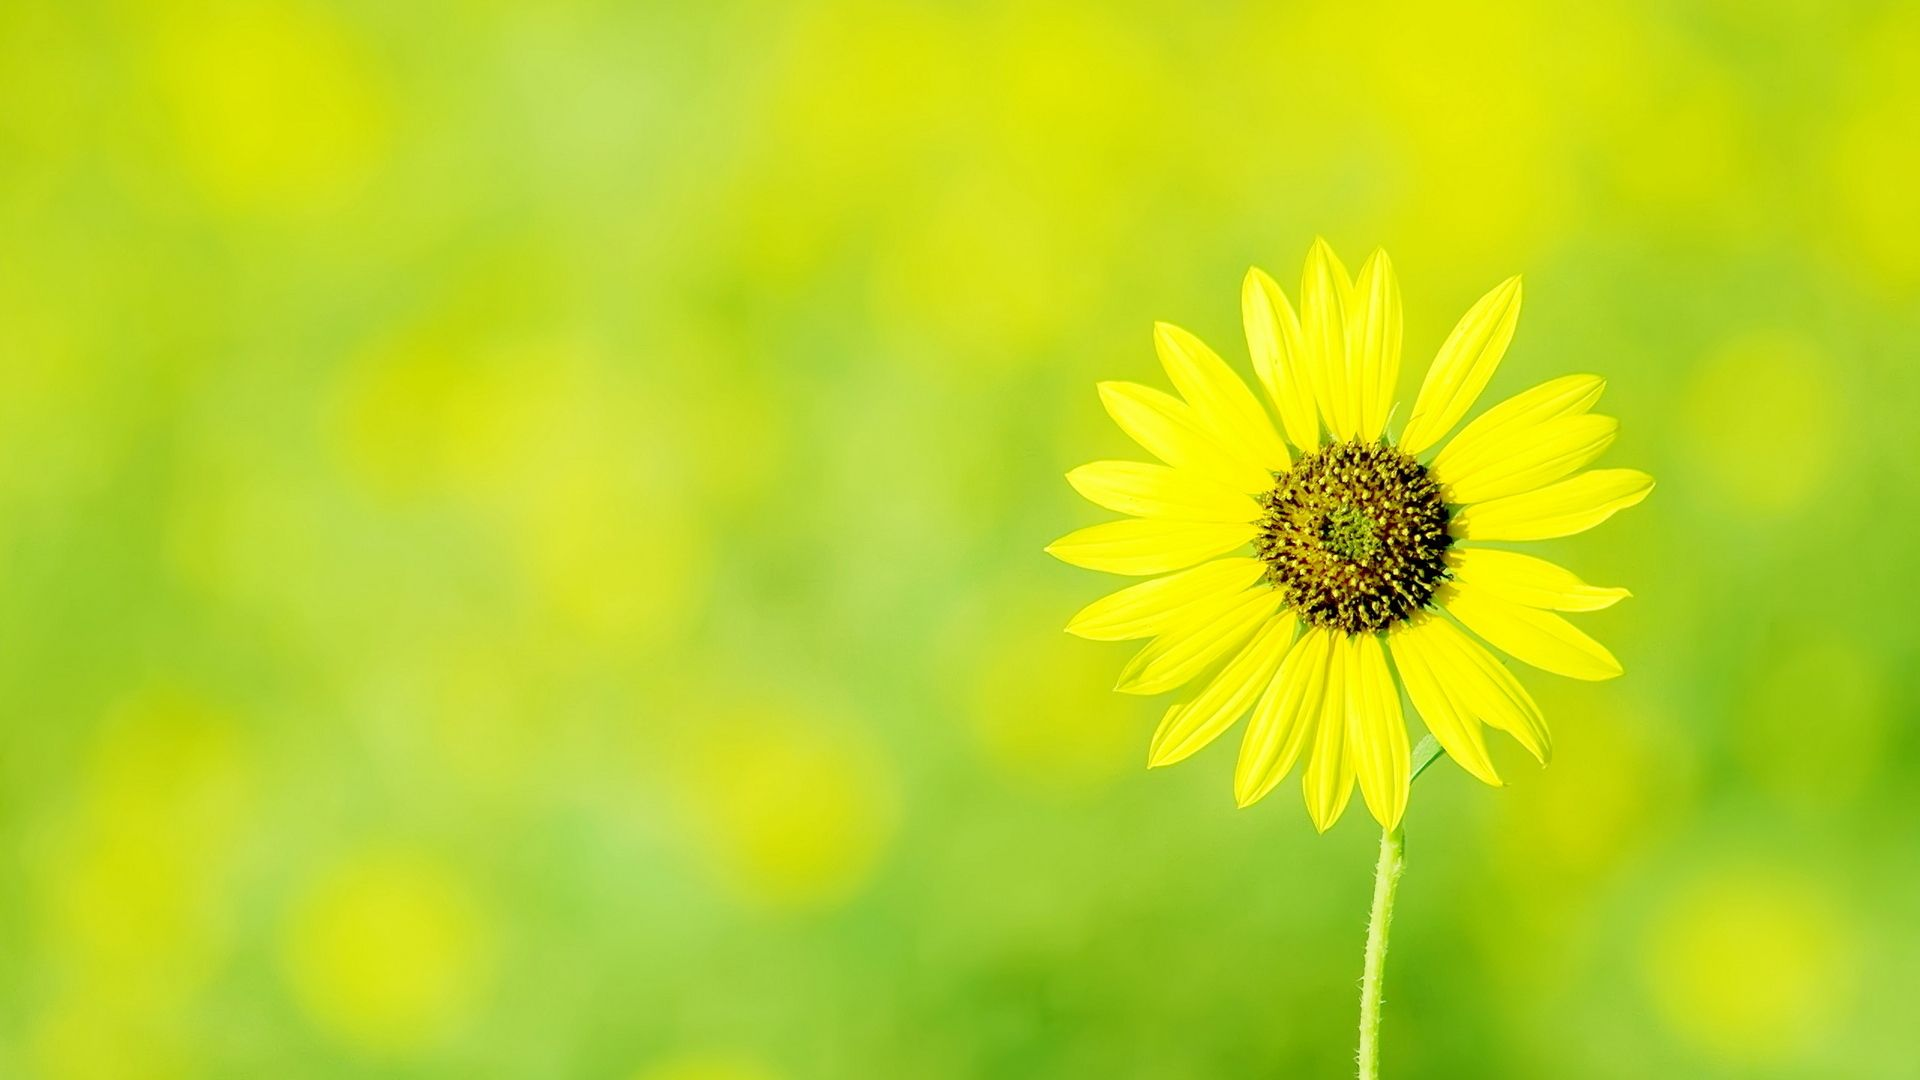 Yellow Sunflower High Definition Wallpapers Hd Wallpapers 1080p